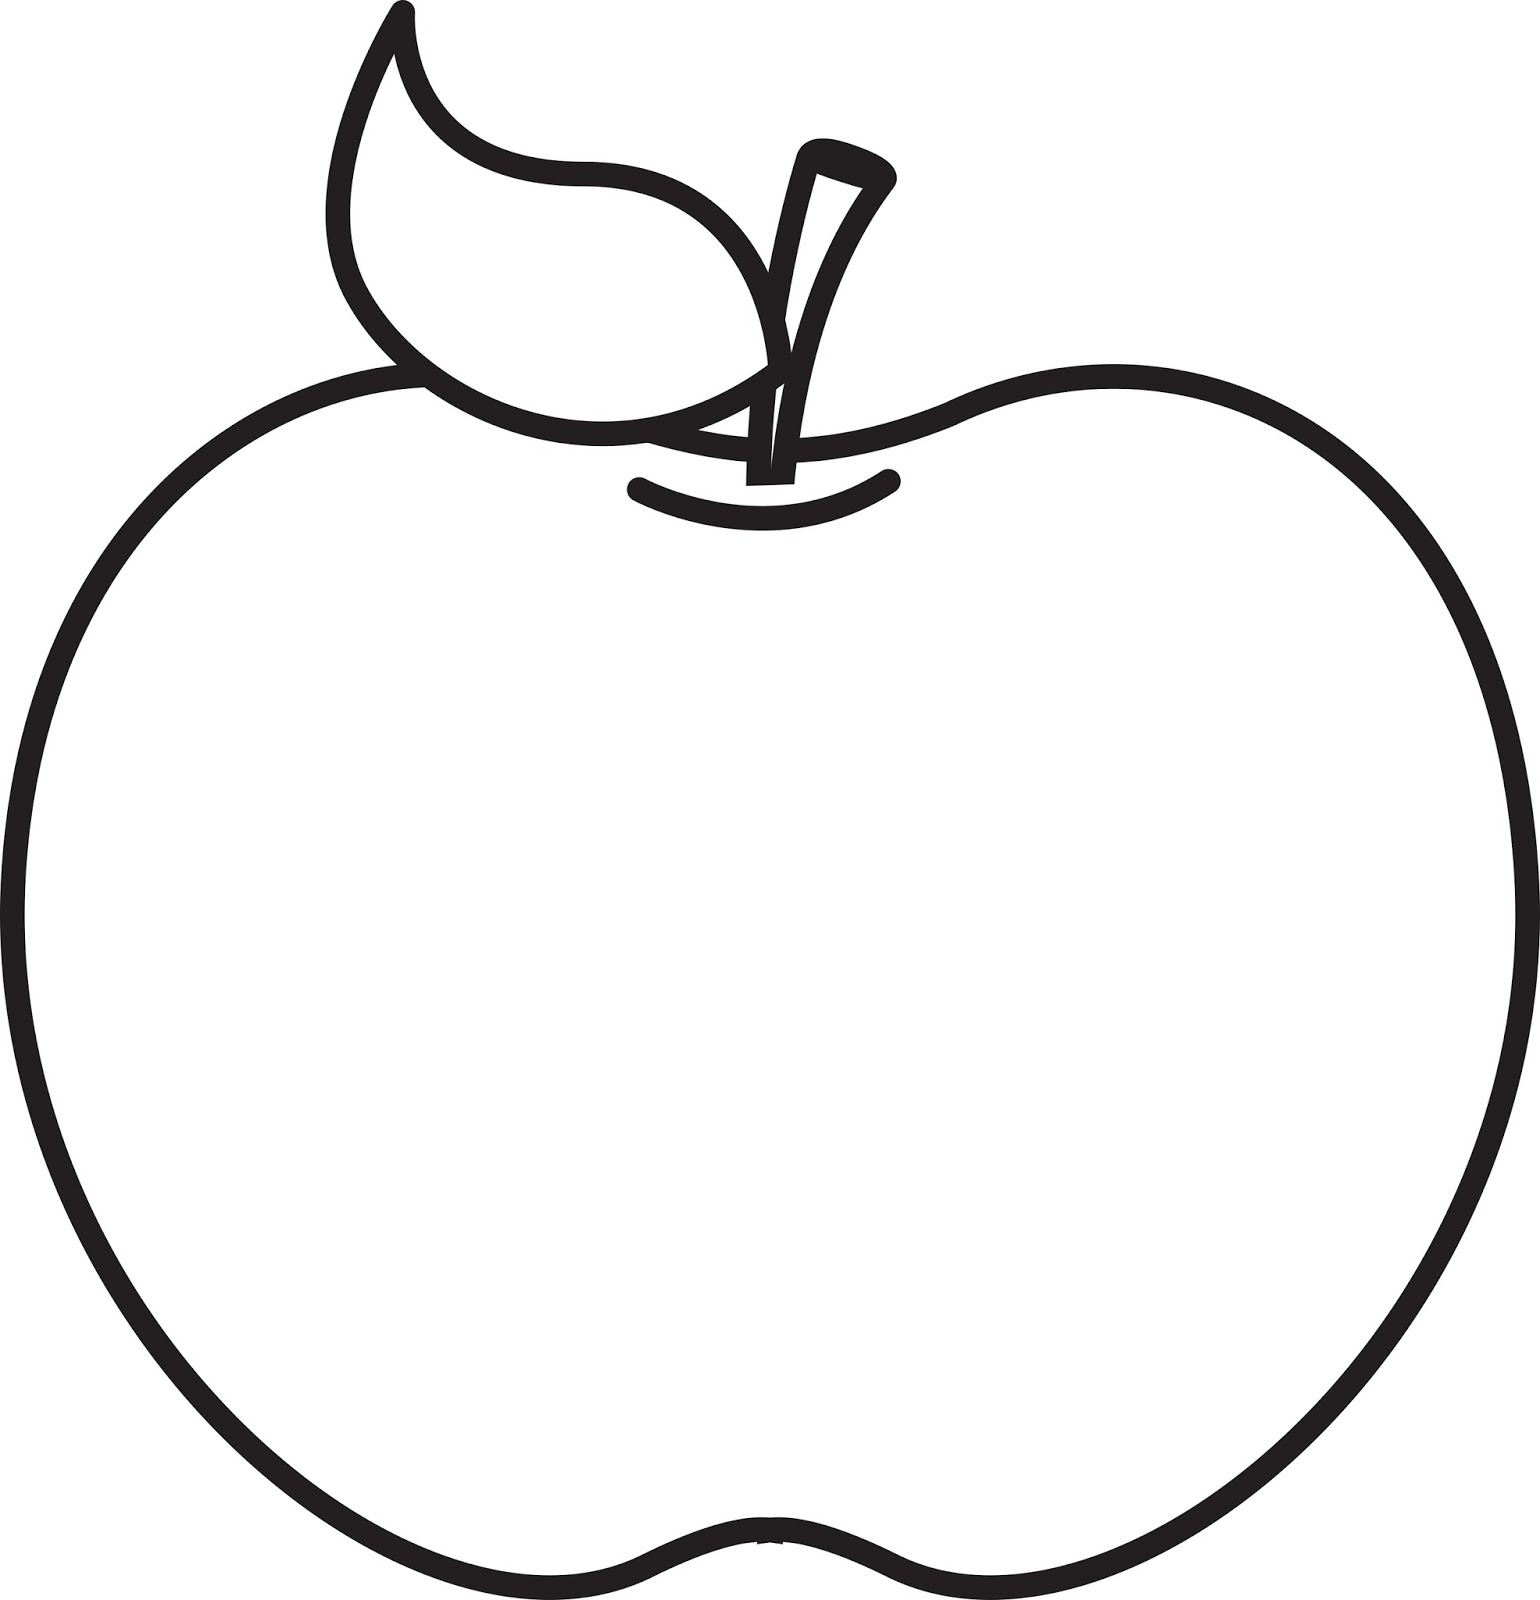 apple clipart images apple clipart black and white apple clipart.